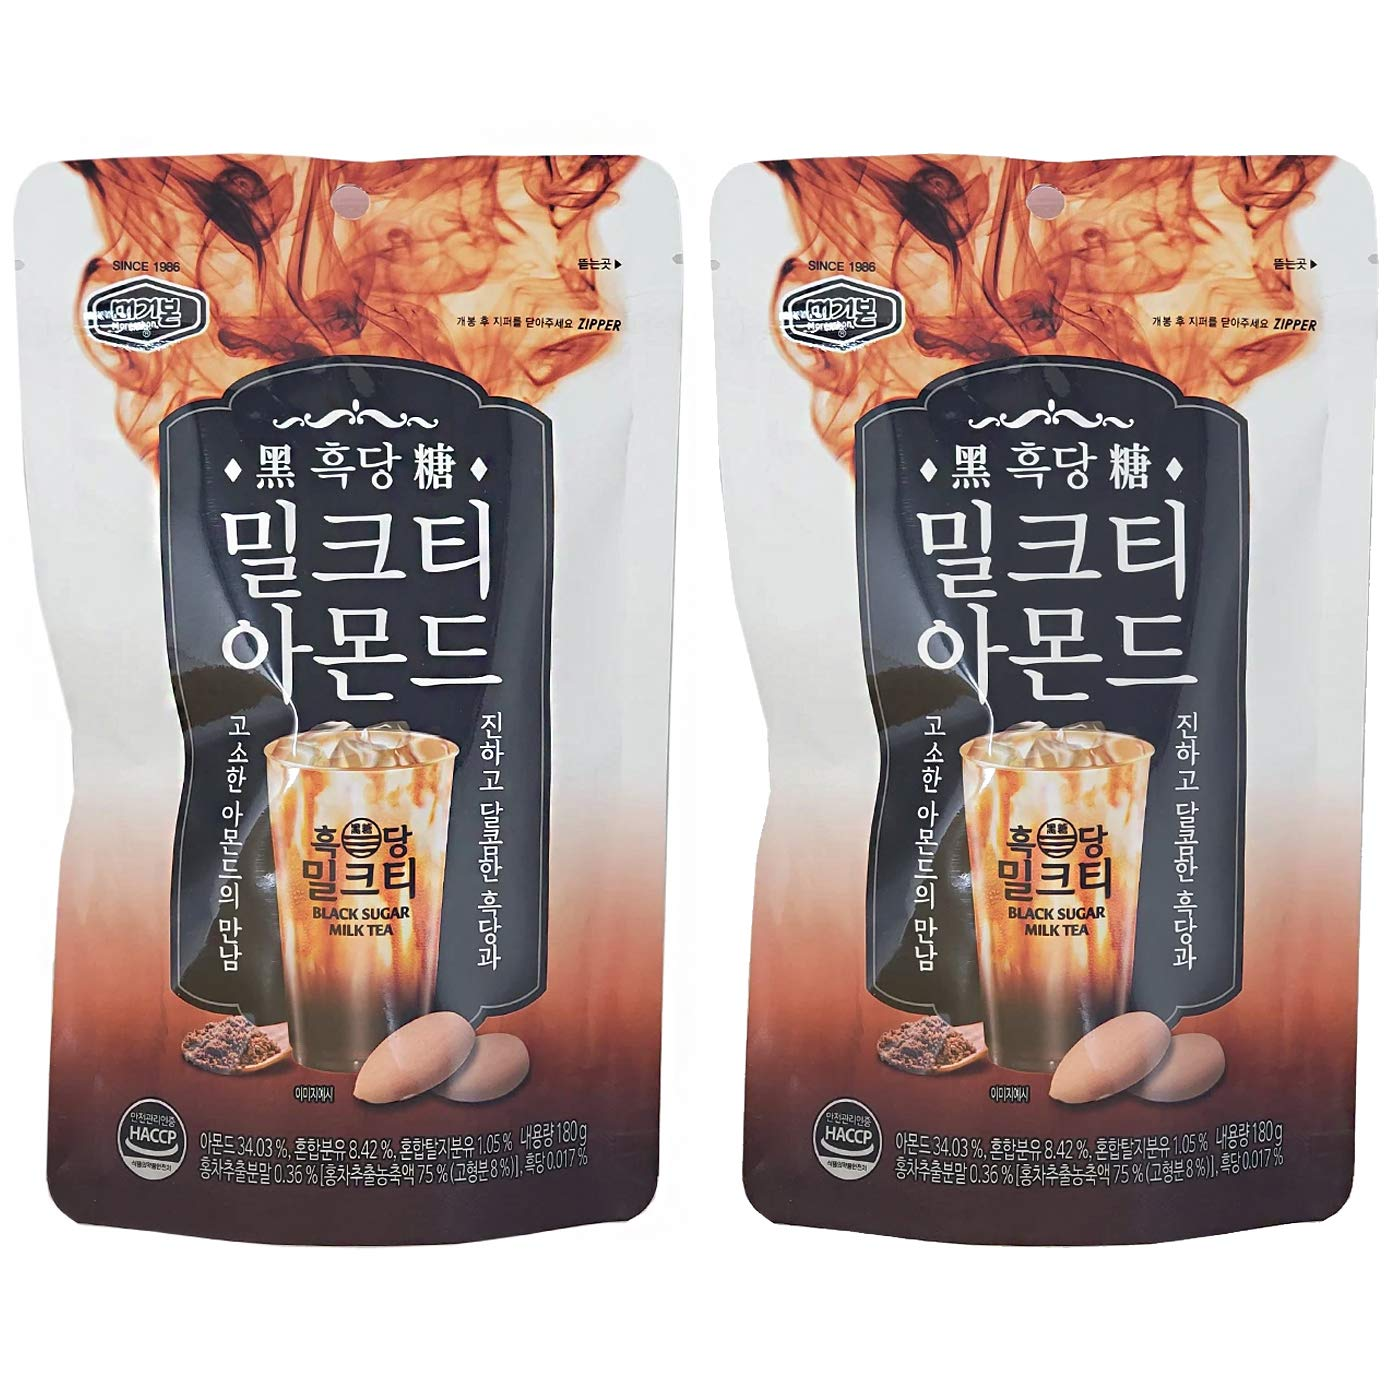 Murgerbon Black Sugar Courier shipping free shipping Milk Tea Credence Roasted Flavor Pack 180g Almonds